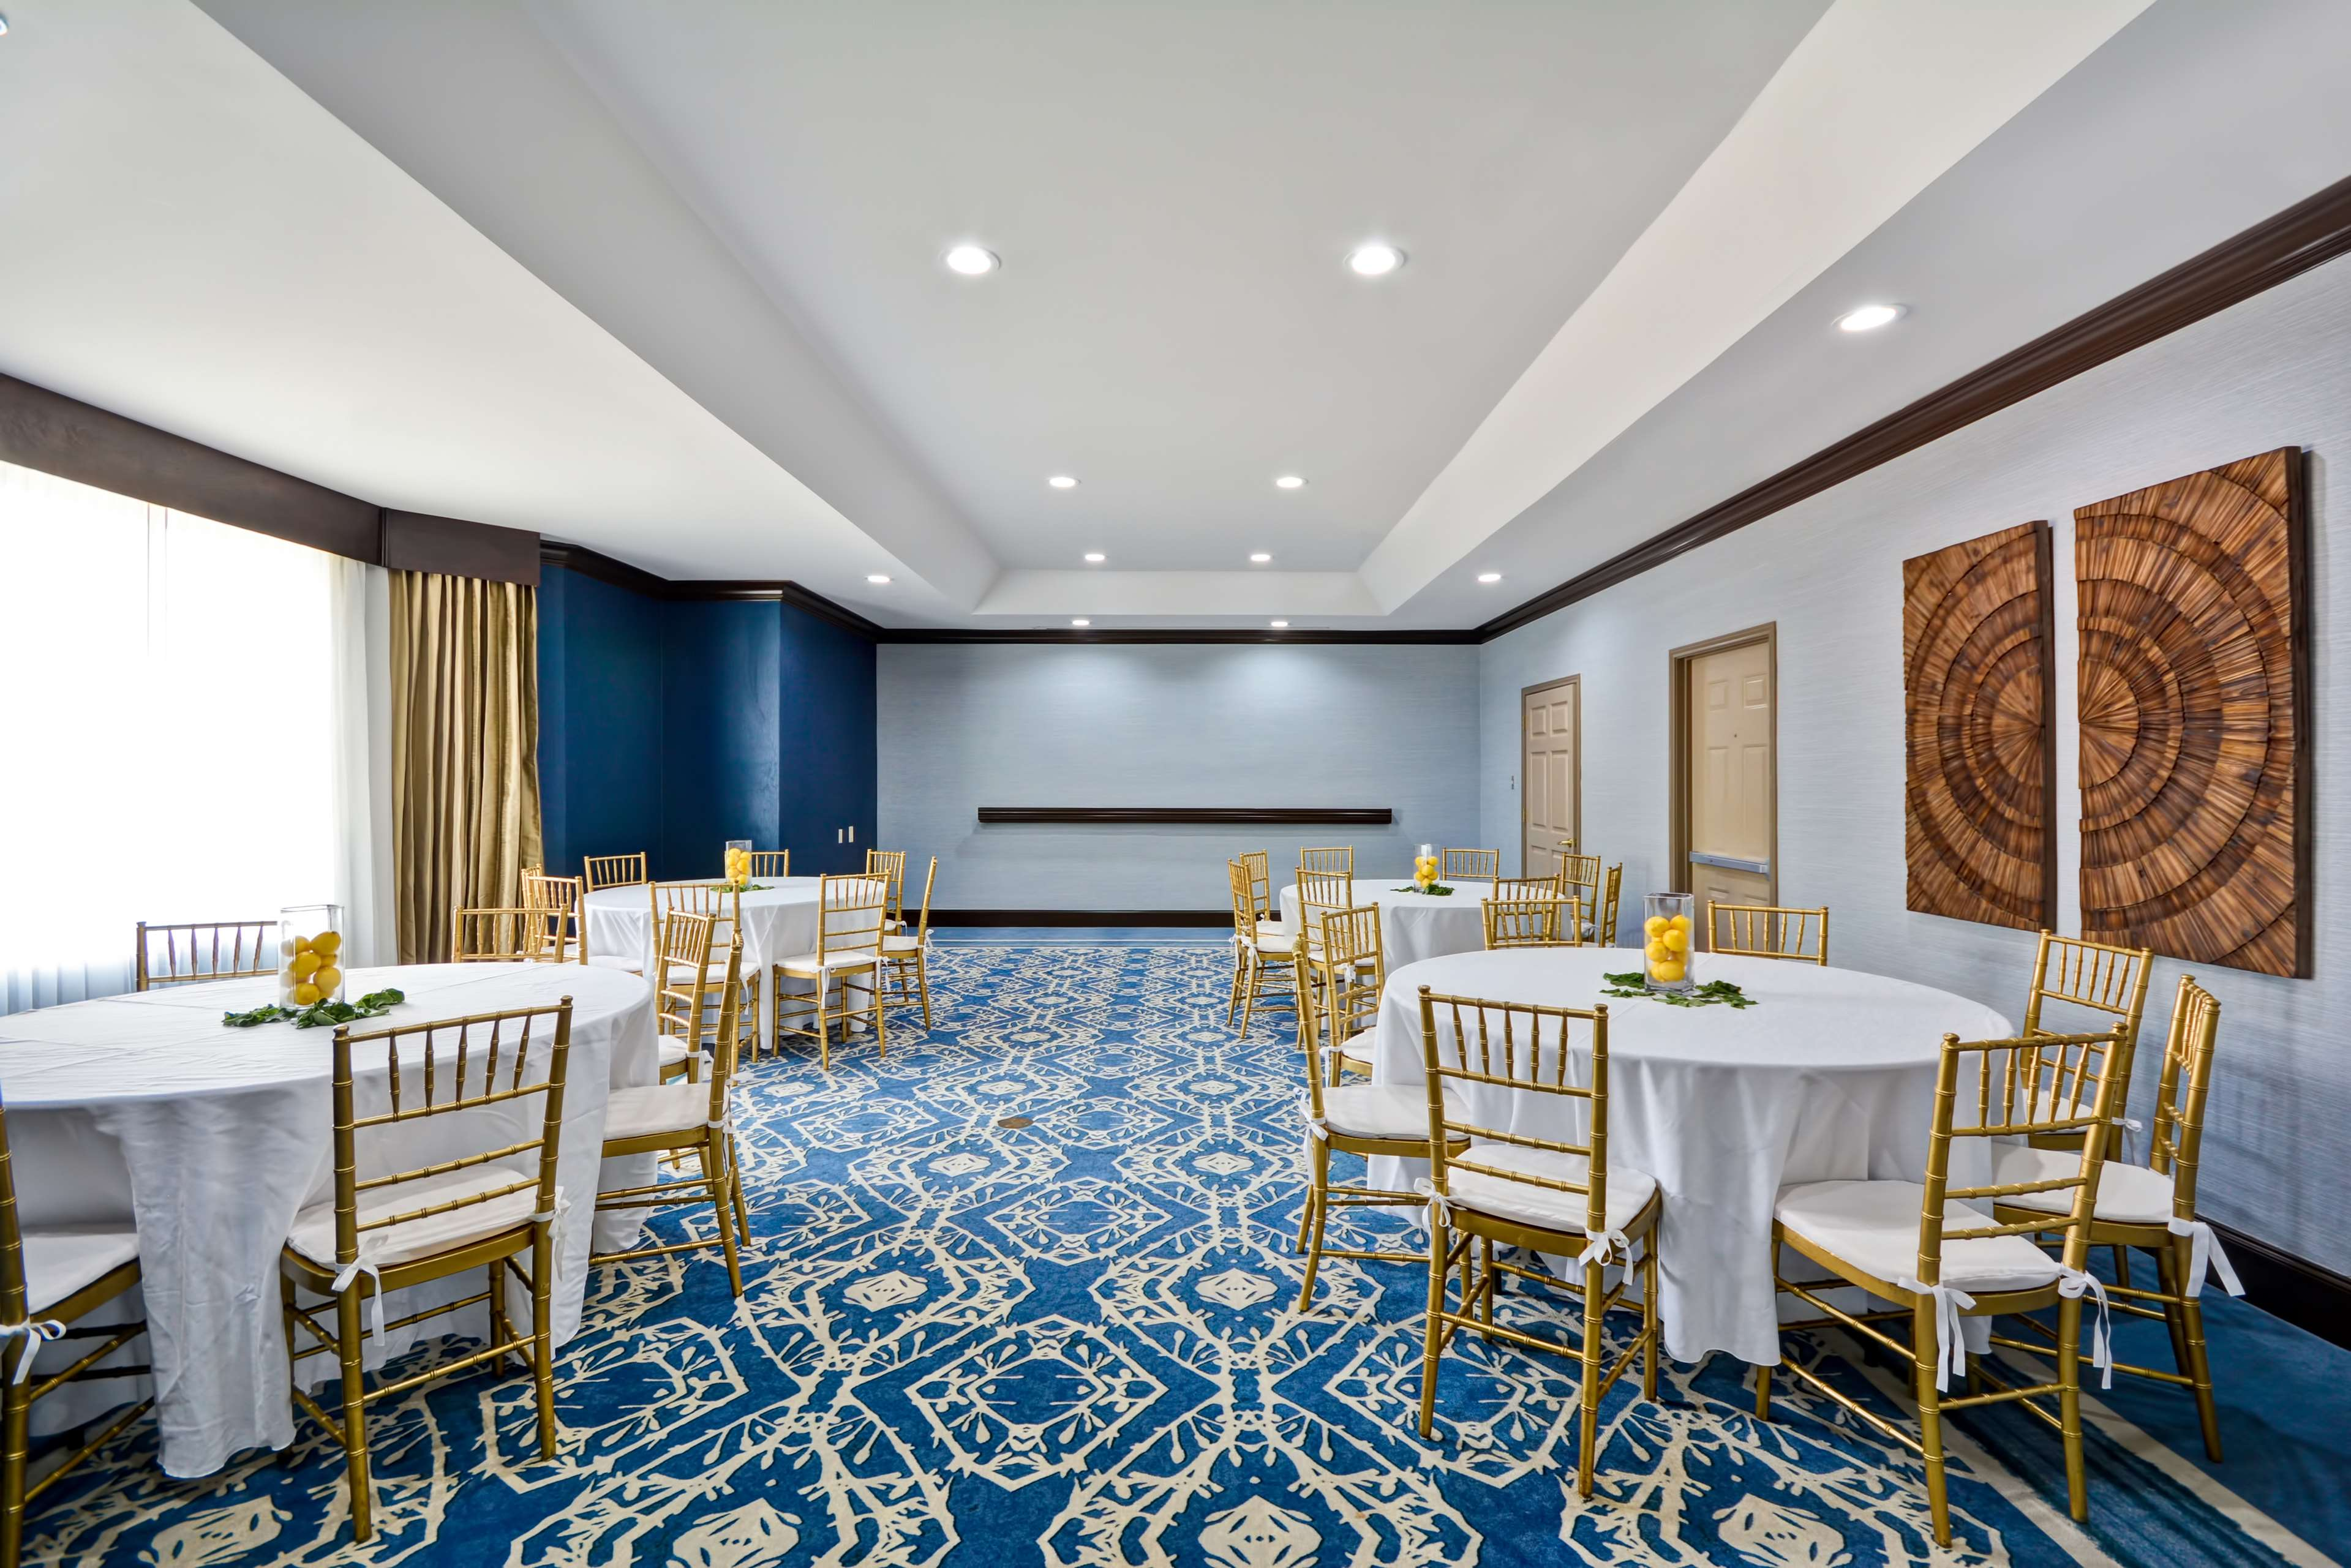 Homewood Suites by Hilton Dallas-Lewisville image 41